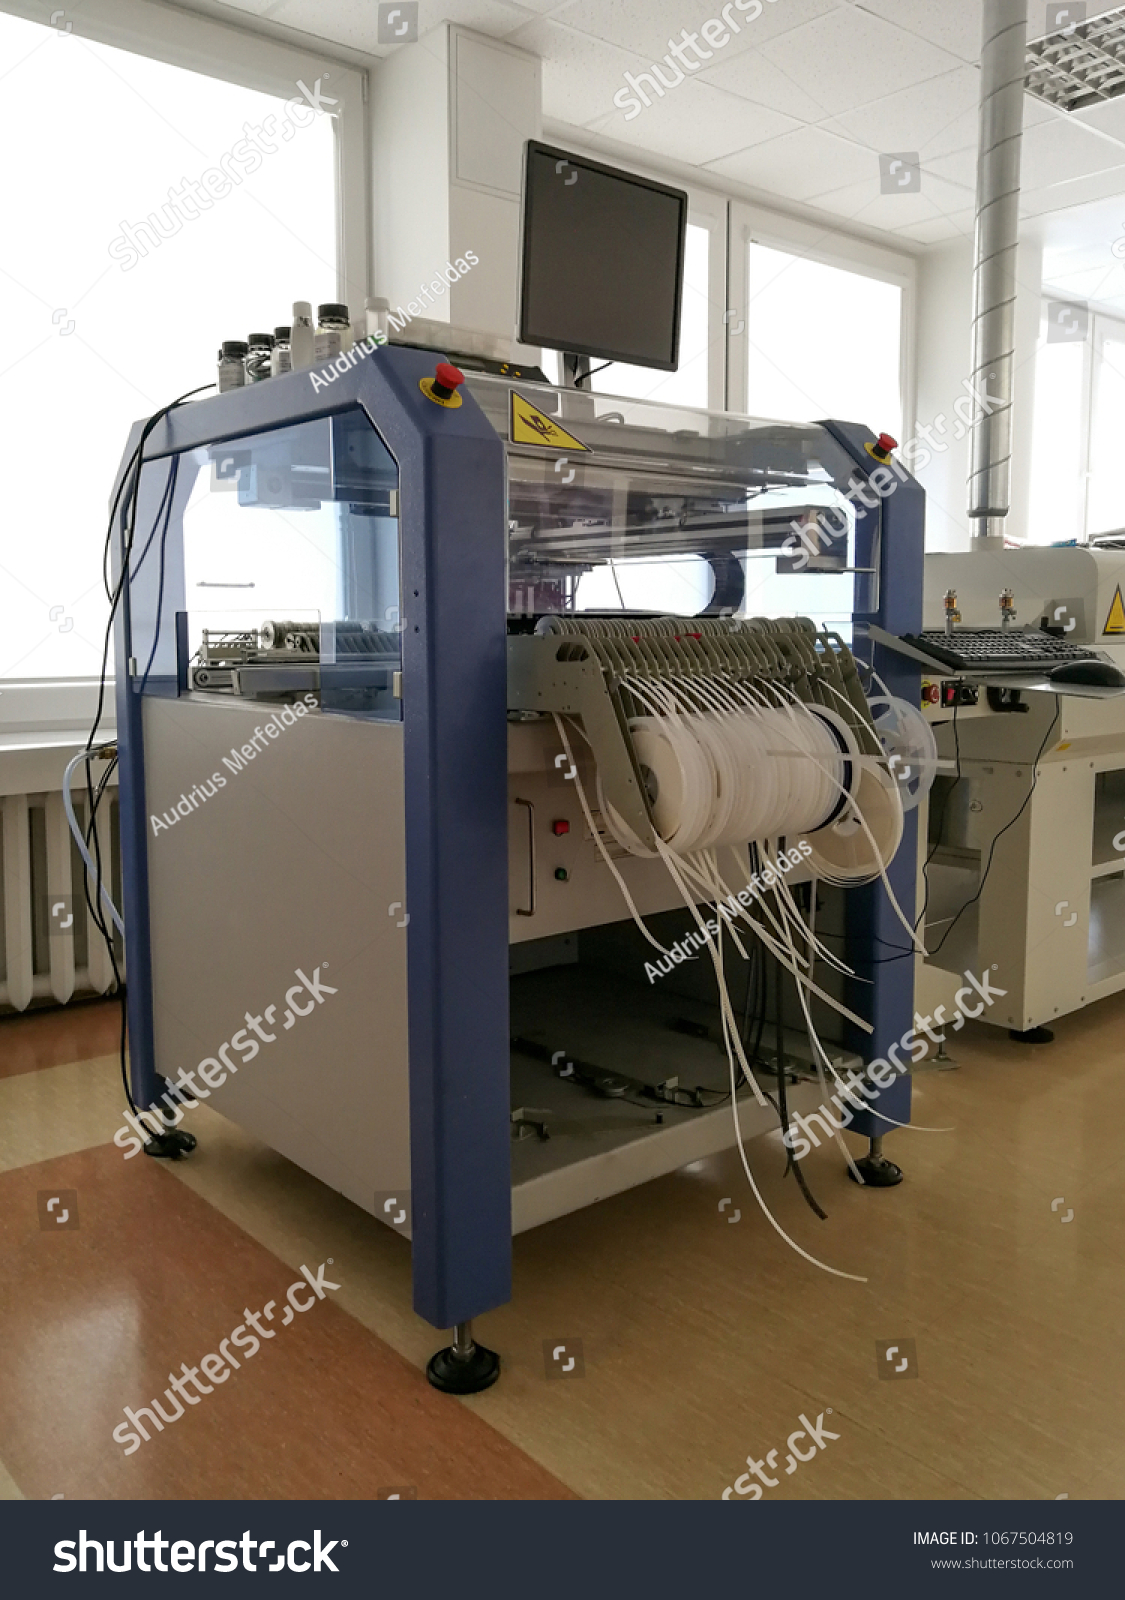 Printed Circuit Board Components Assembling Machinery Stock Photo Making Machine Buy For Industrial Manufacturing